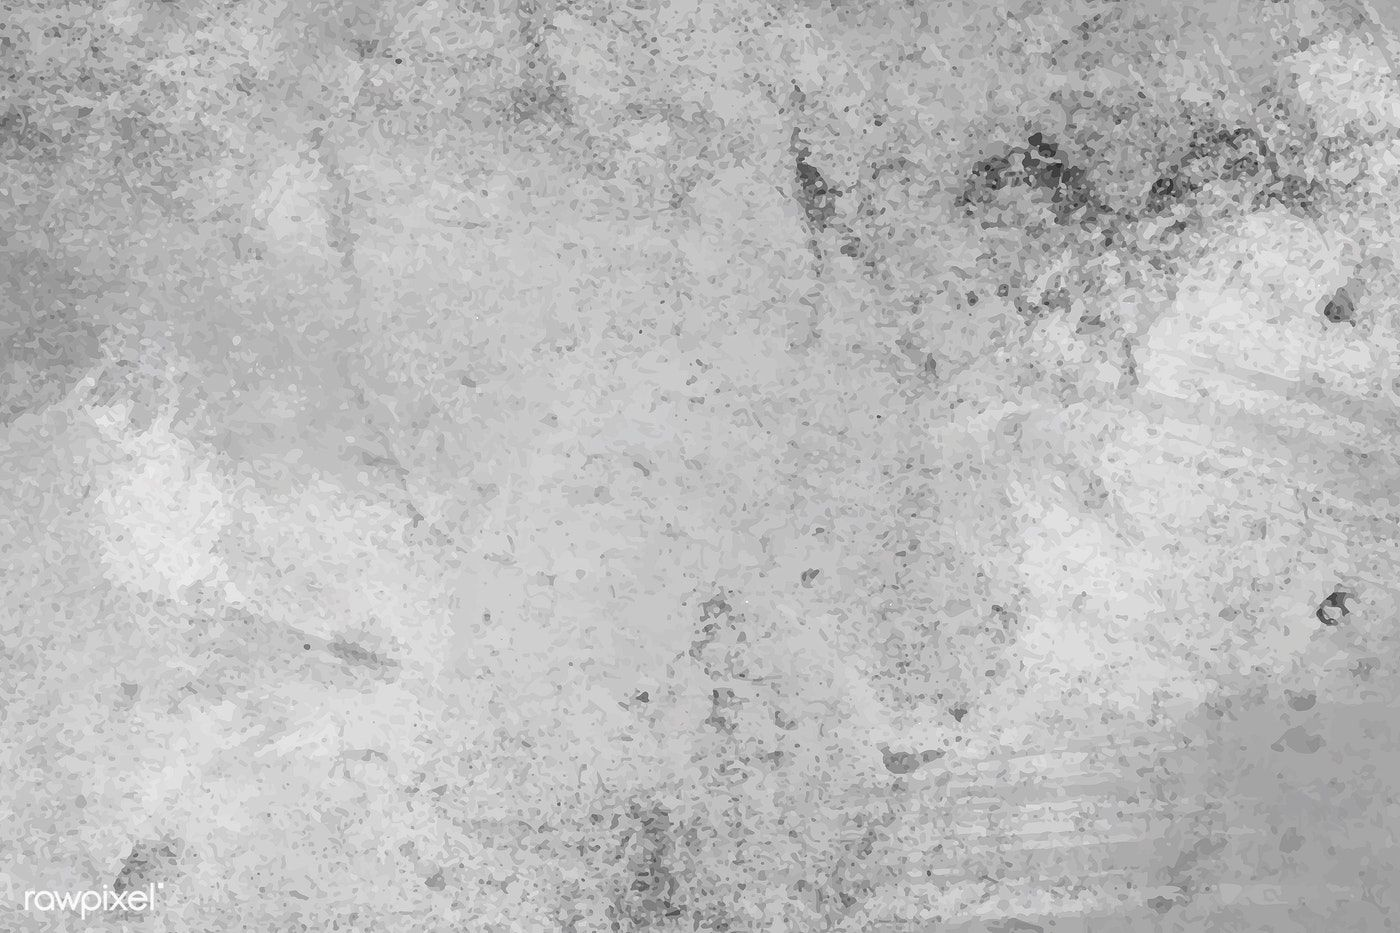 Rustic Gray Cement Textured Wall Vector Free Image By Rawpixel Com Niwat Cement Texture Concrete Texture Stock Images Free